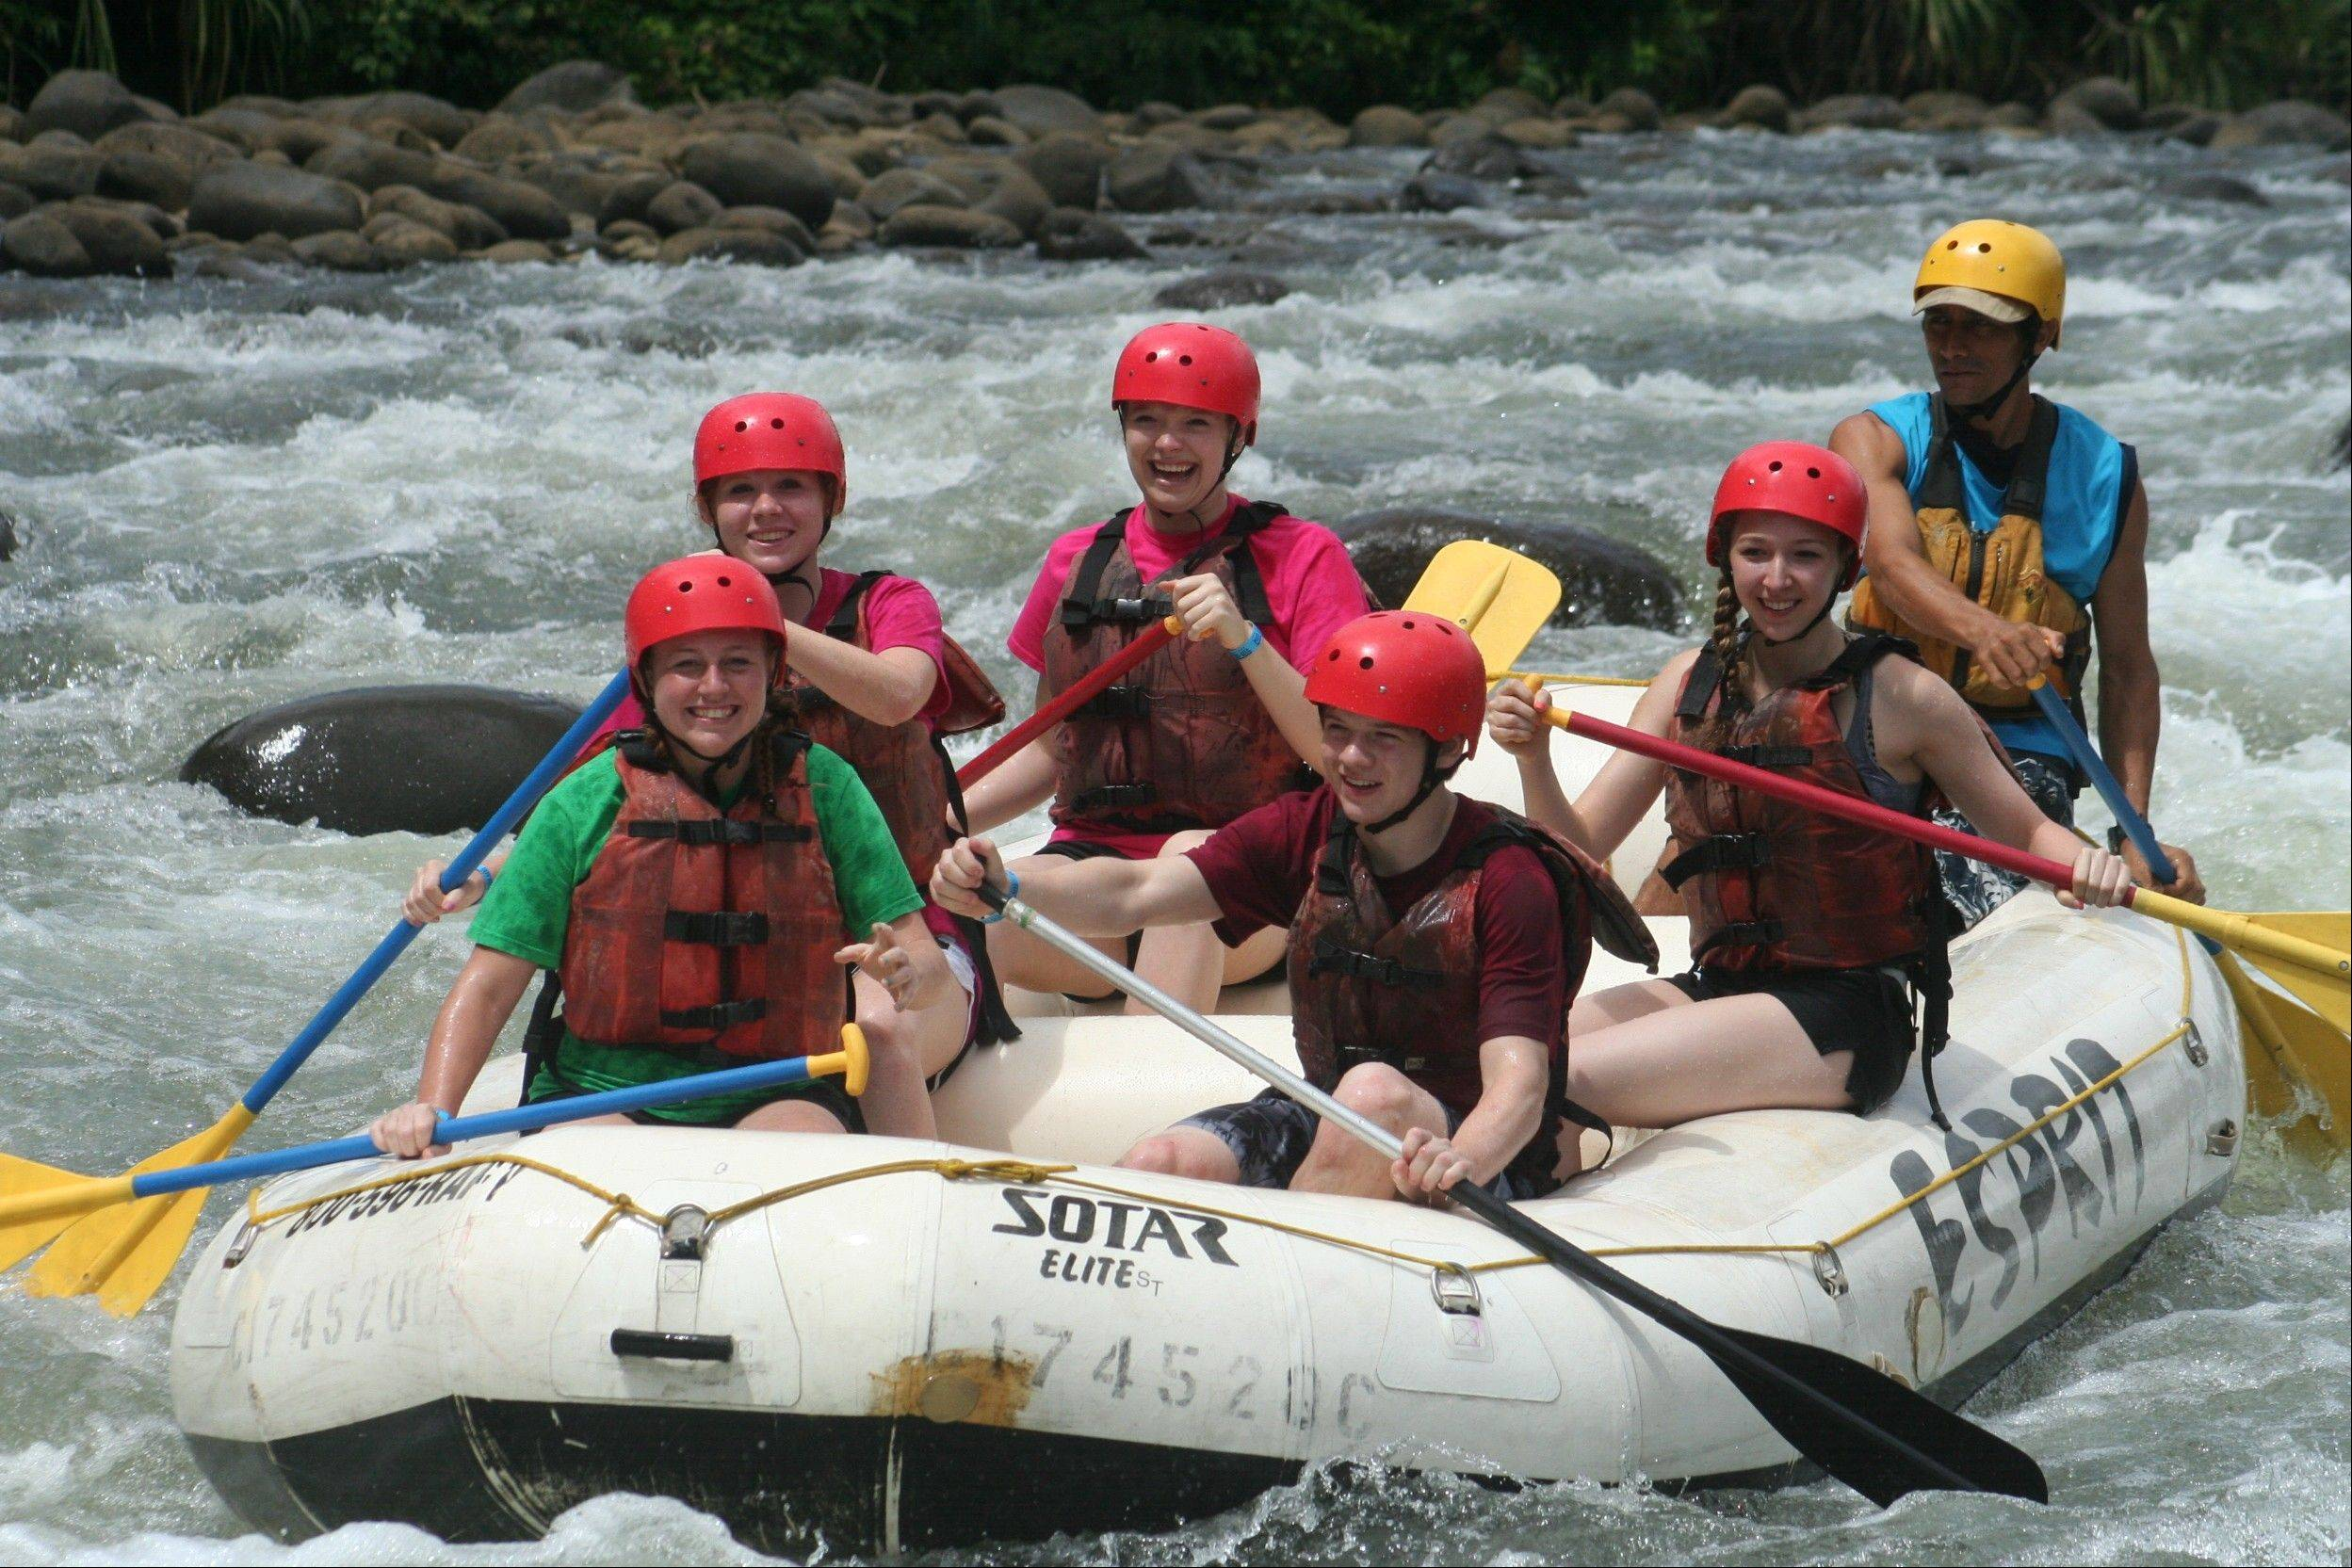 After completing their school work, Emily Longo, Claire Cason, Holly Giglio, Keagan Cornier and Tara Charvat, Schaumburg High School Spanish students, enjoy some free time white water rafting down the Sarapiqui River.